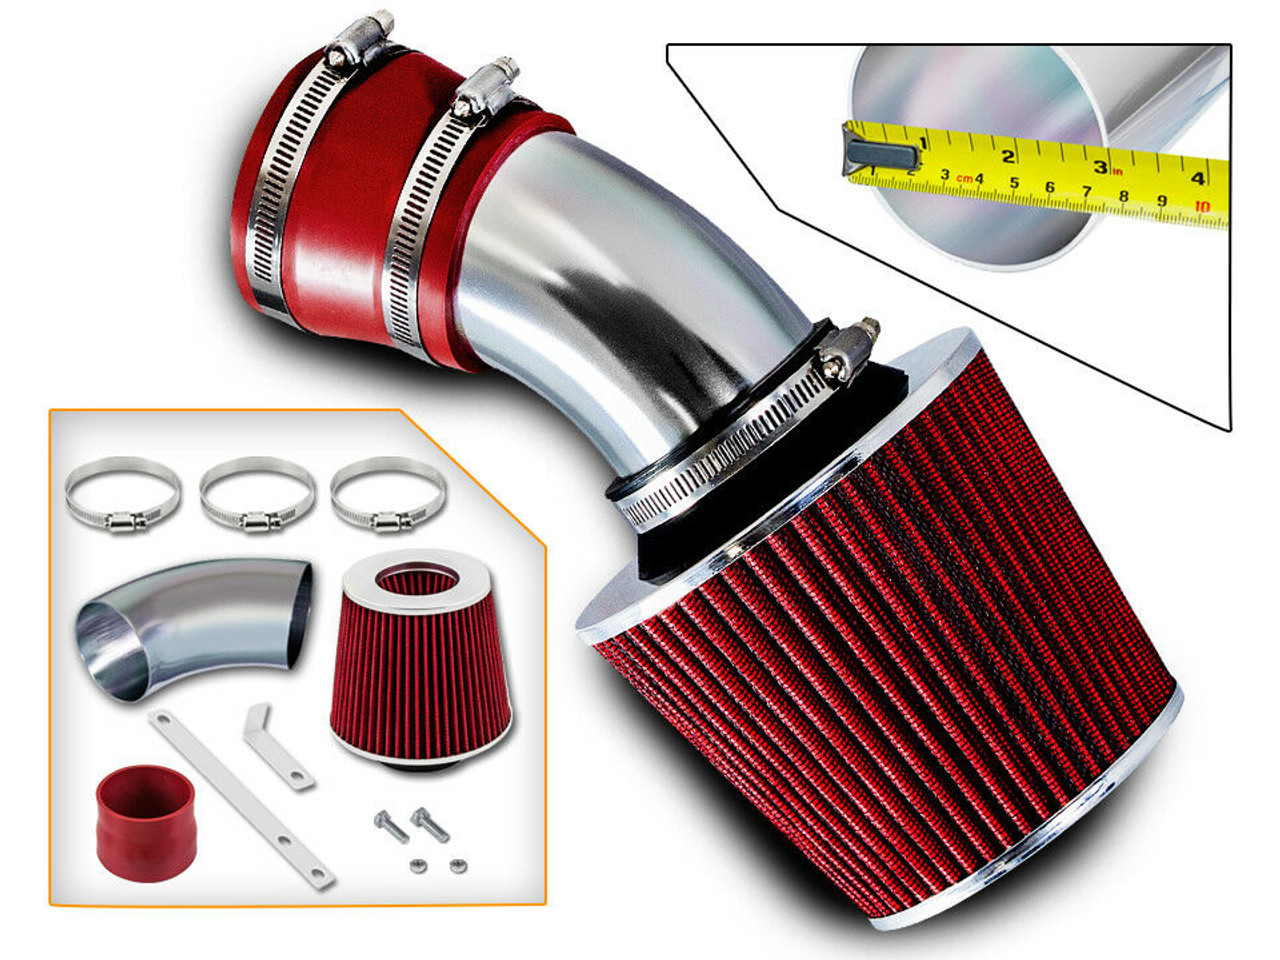 Cold Air Intake For Bmw Z3 E36 1997 2002 2 3l 2 5l 2 8l 3 0l 6 Cylinder Engines Performance Chip Tuning